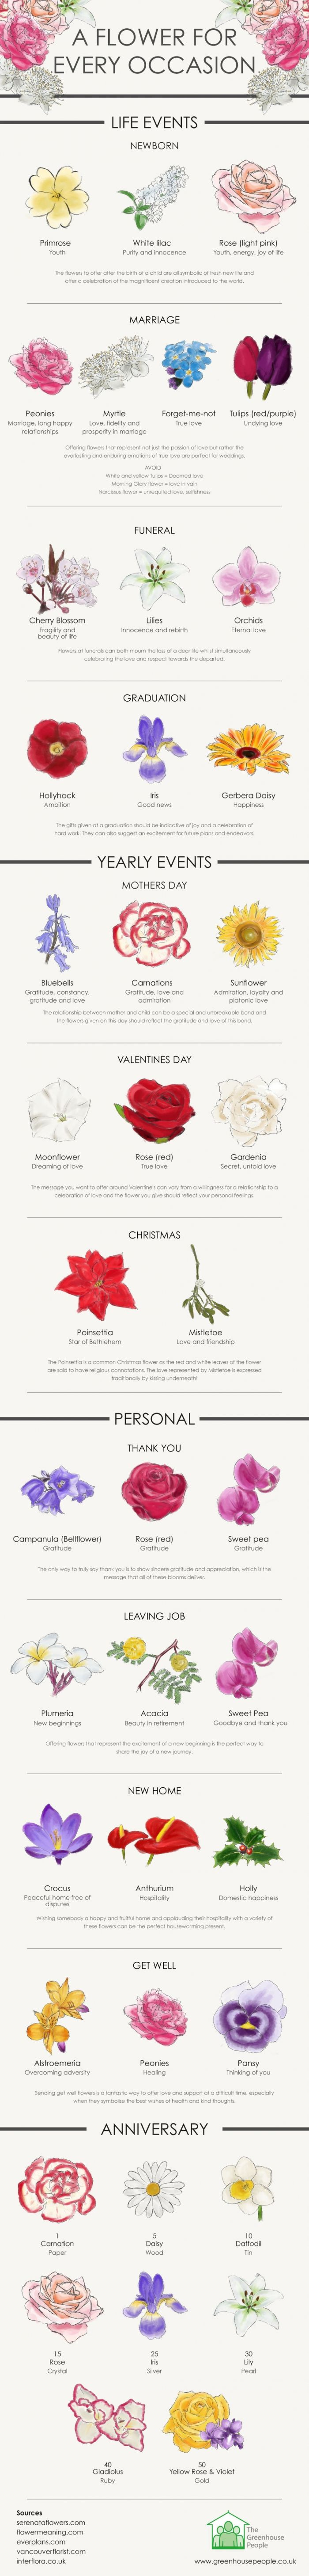 Infographic: A Flower for Every Occasion #Infographics